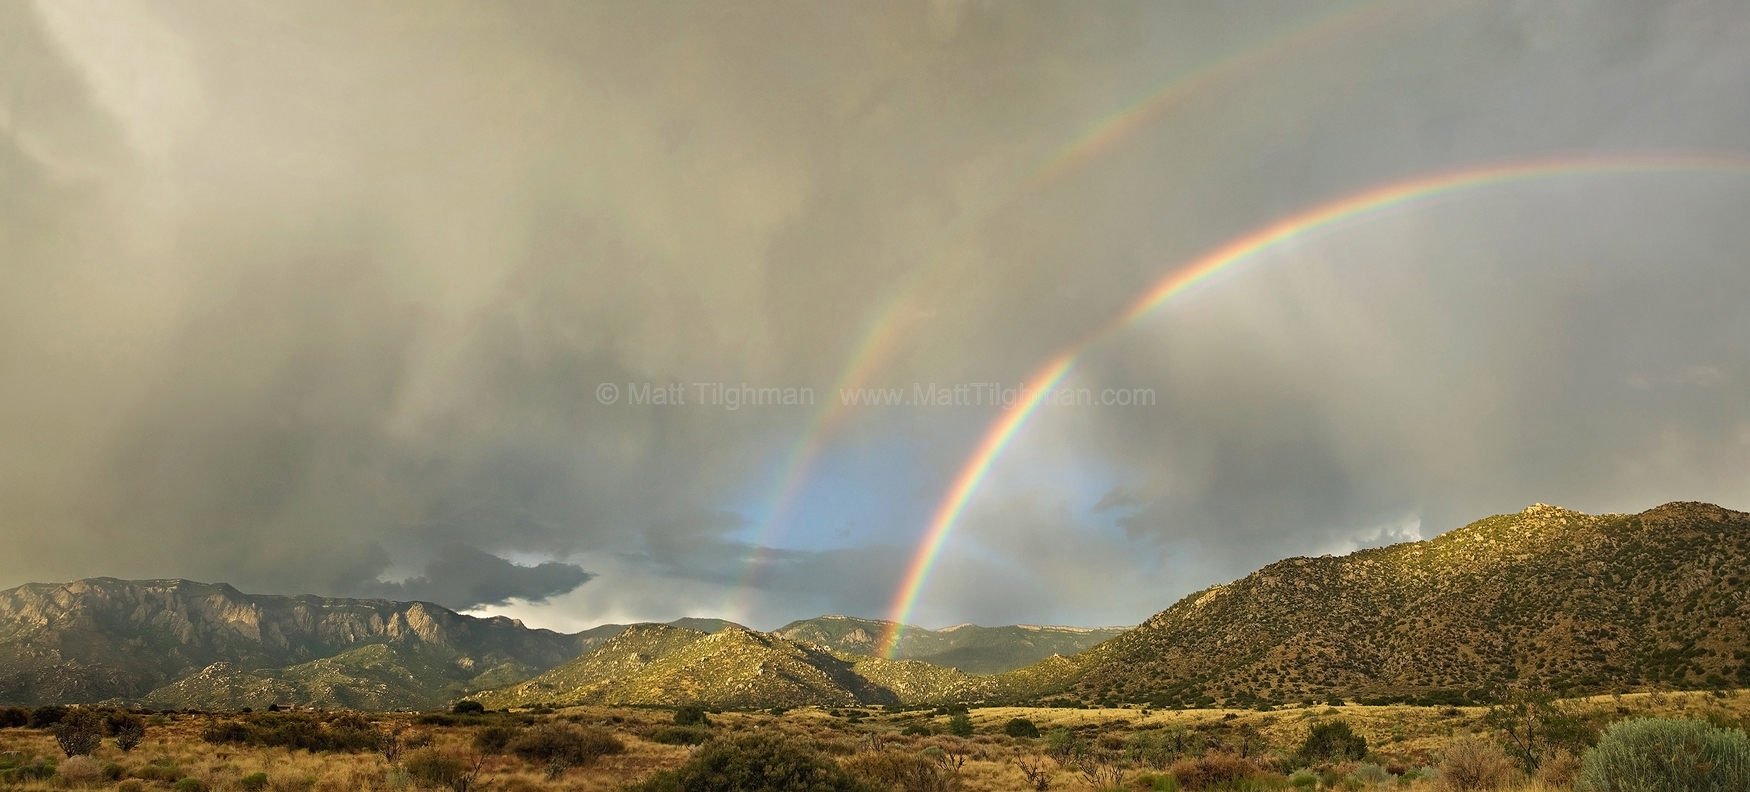 """Fine art stock landscape photograph from Albuquerque, New Mexico. A double rainbow over the Sandia Mountains proves the state's motto, """"Land of Enchantment."""""""